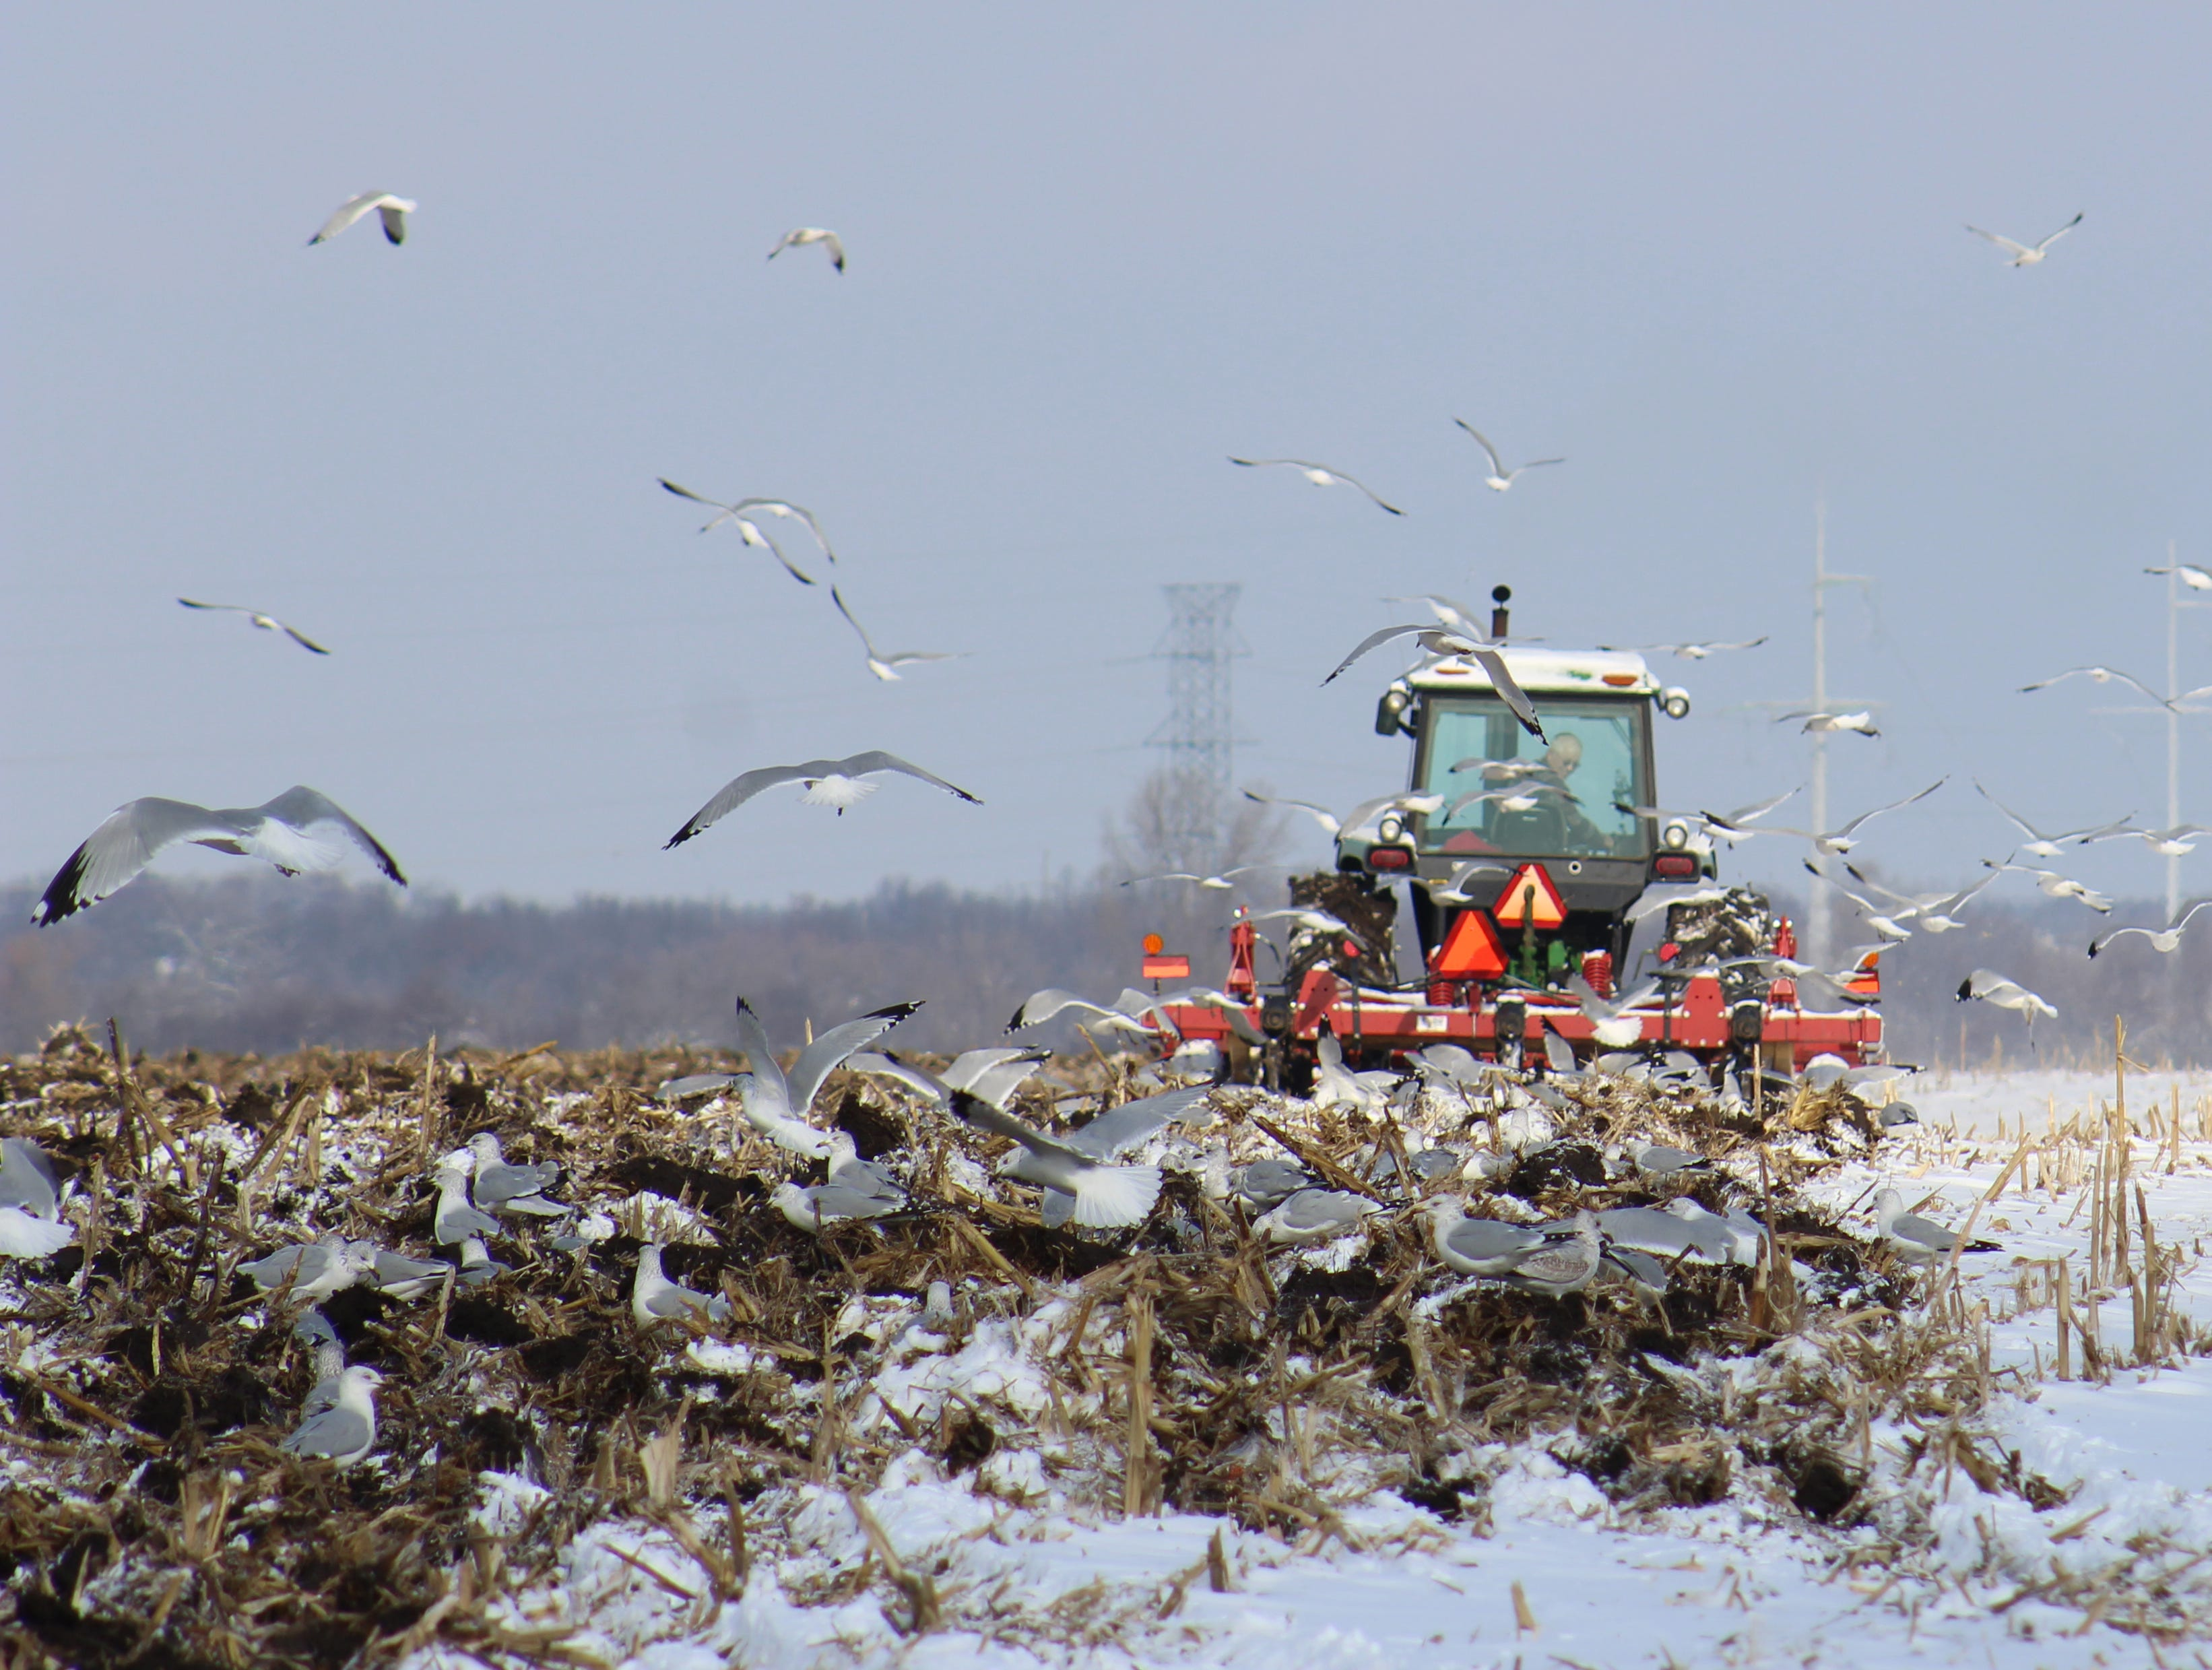 A cloud of seagulls follow a tractor as a Fond du Lac County farmers gets some fall fieldwork done before the frost hardens the soil.